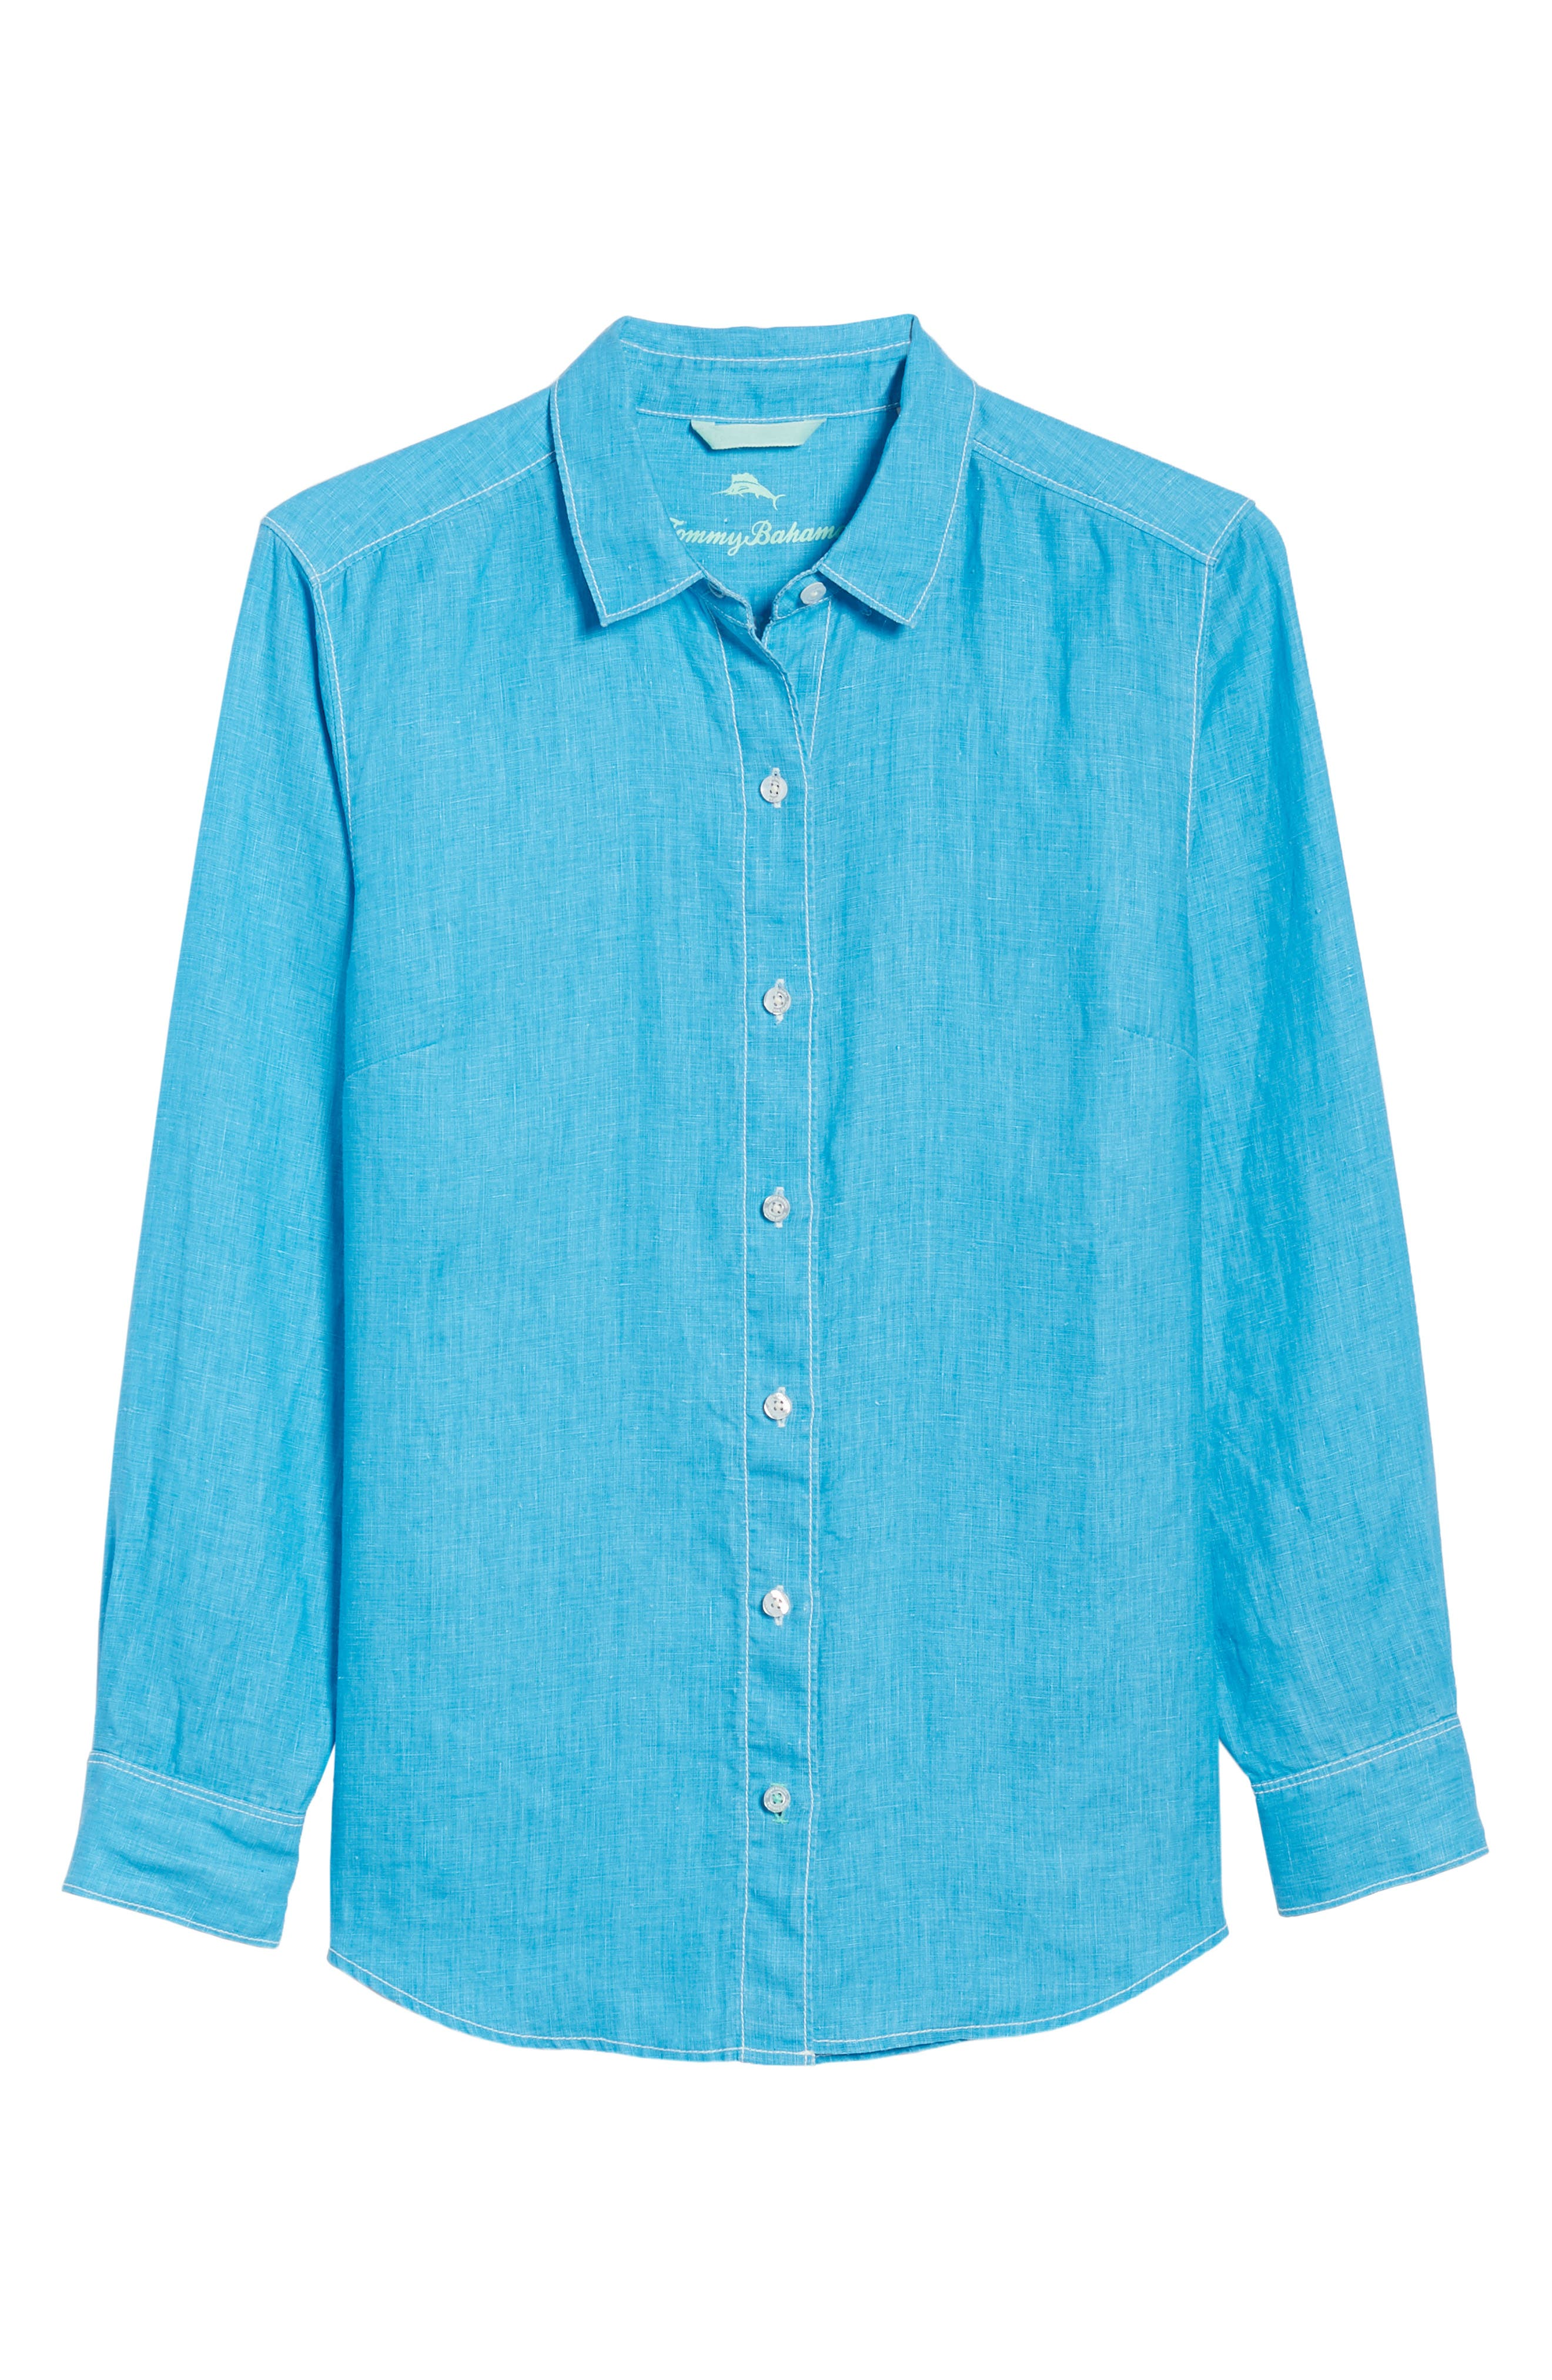 Tommy Bahama Sea Glass Breezer Top